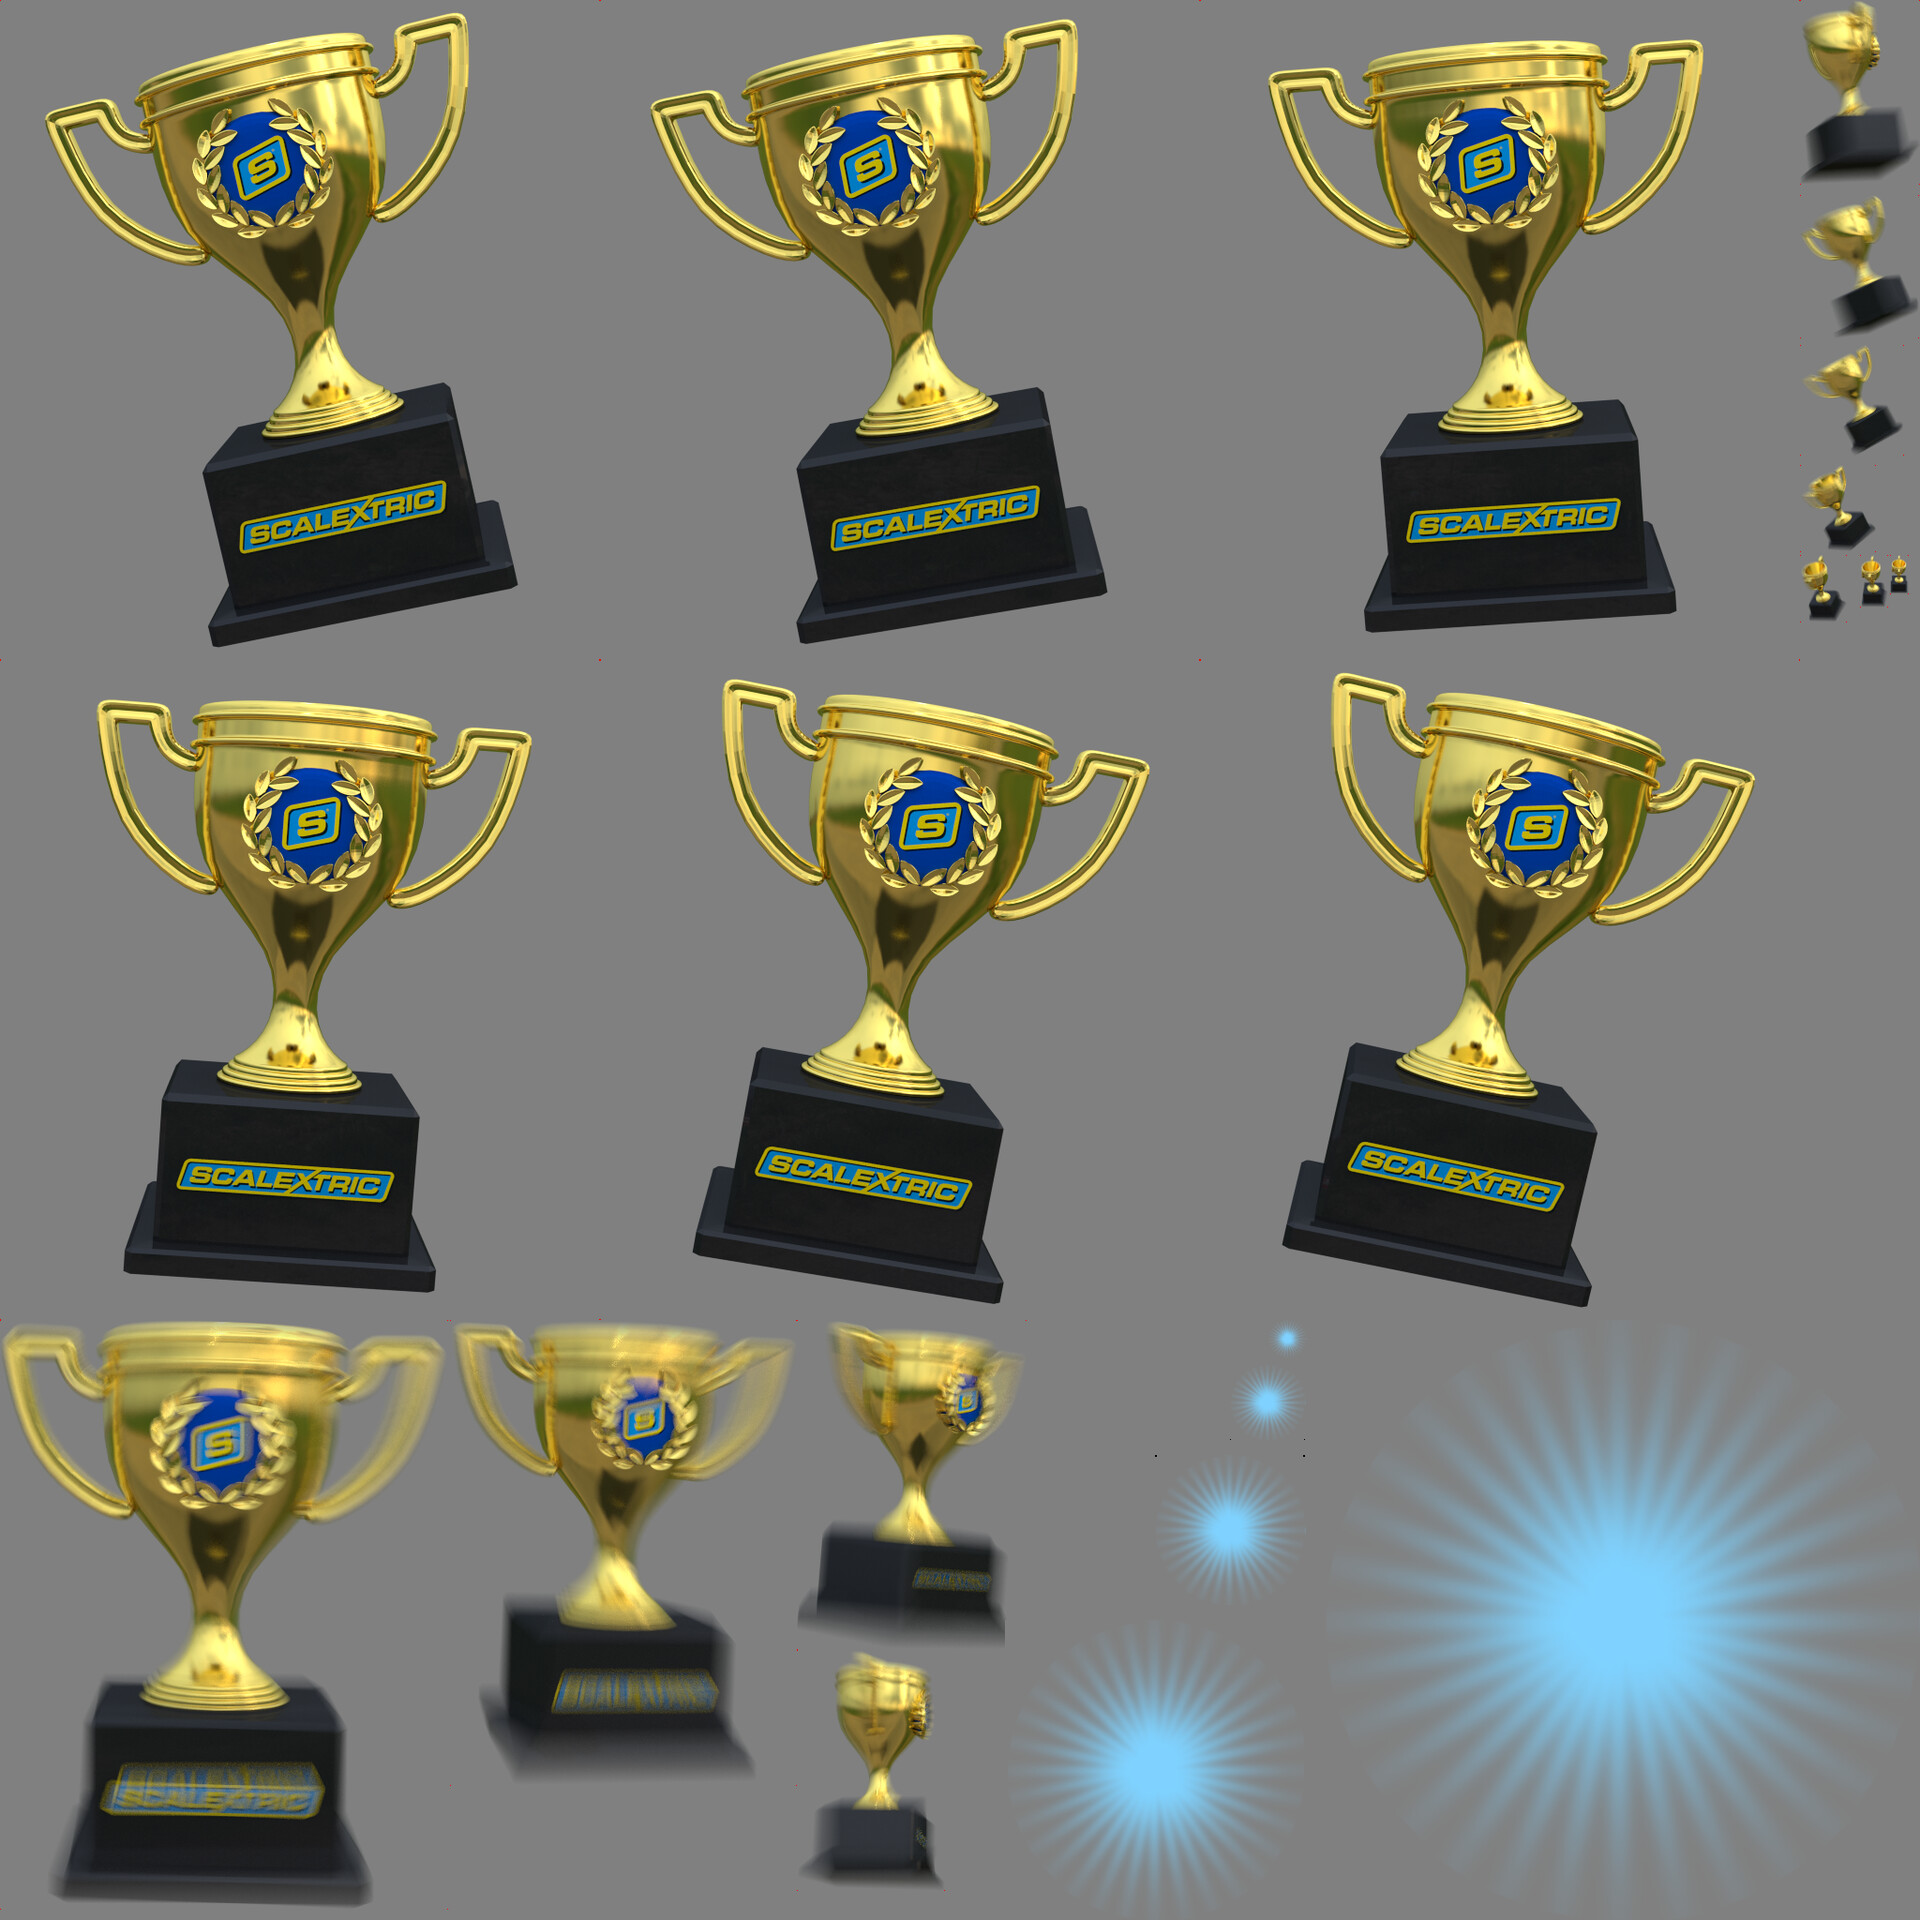 Ingame sprite sheet showing trophy rendered in Blender3D